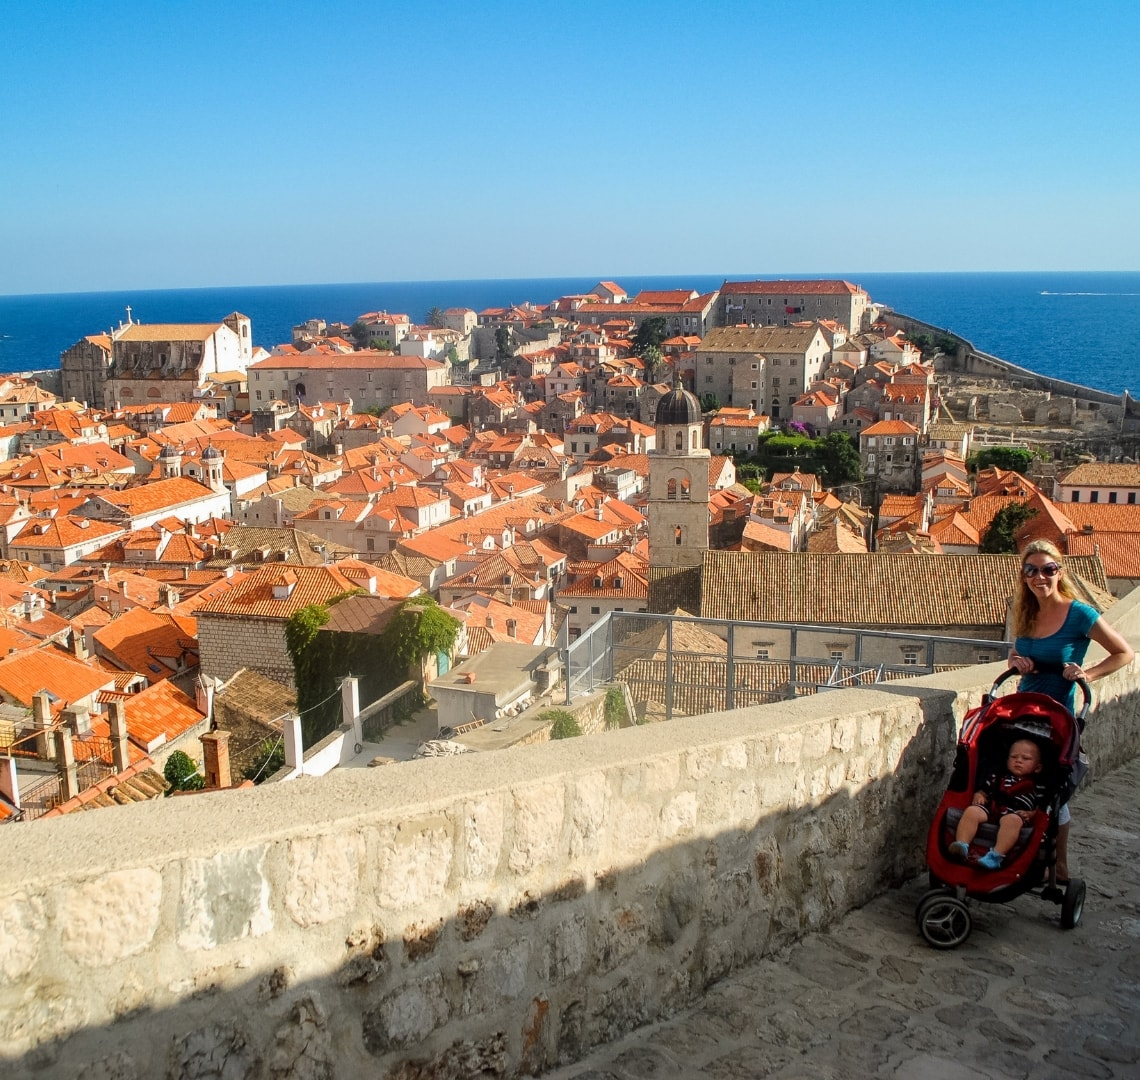 Best family holiday destinations - me with Thing 1 in a pushchair on the Dubrovnik Old Walls with old town Dubrovnik and the sea in the background